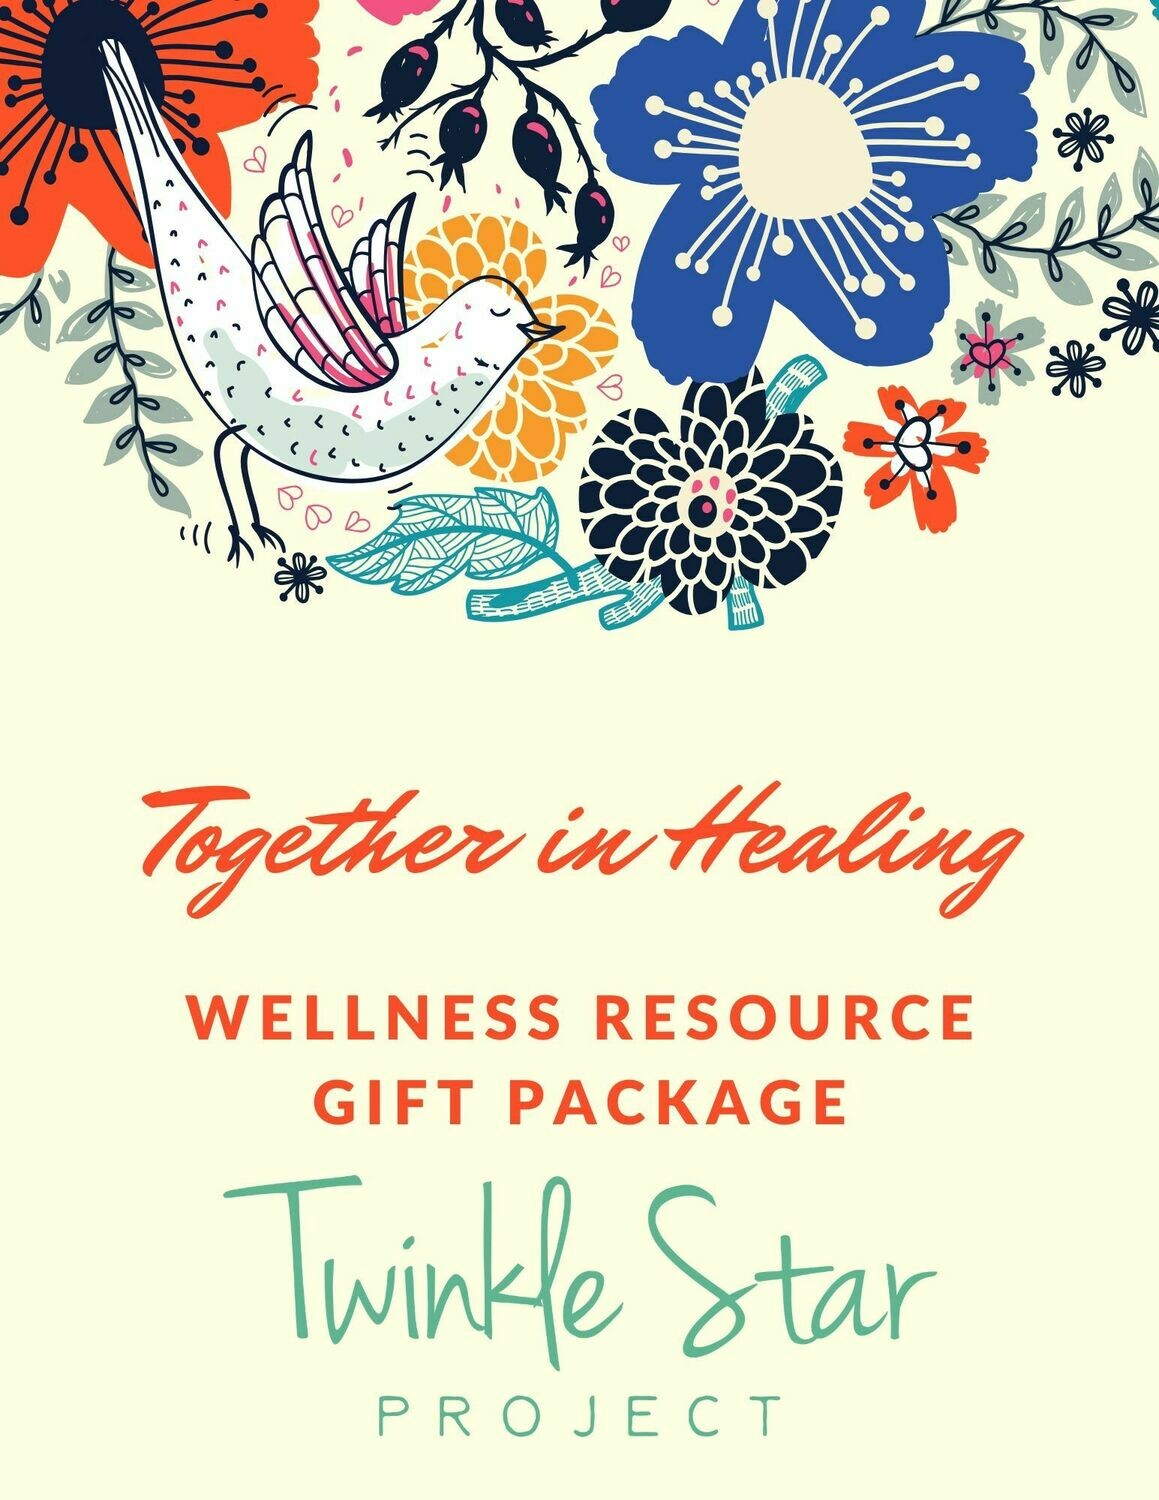 Together in Healing - Wellness Resource Gift Package